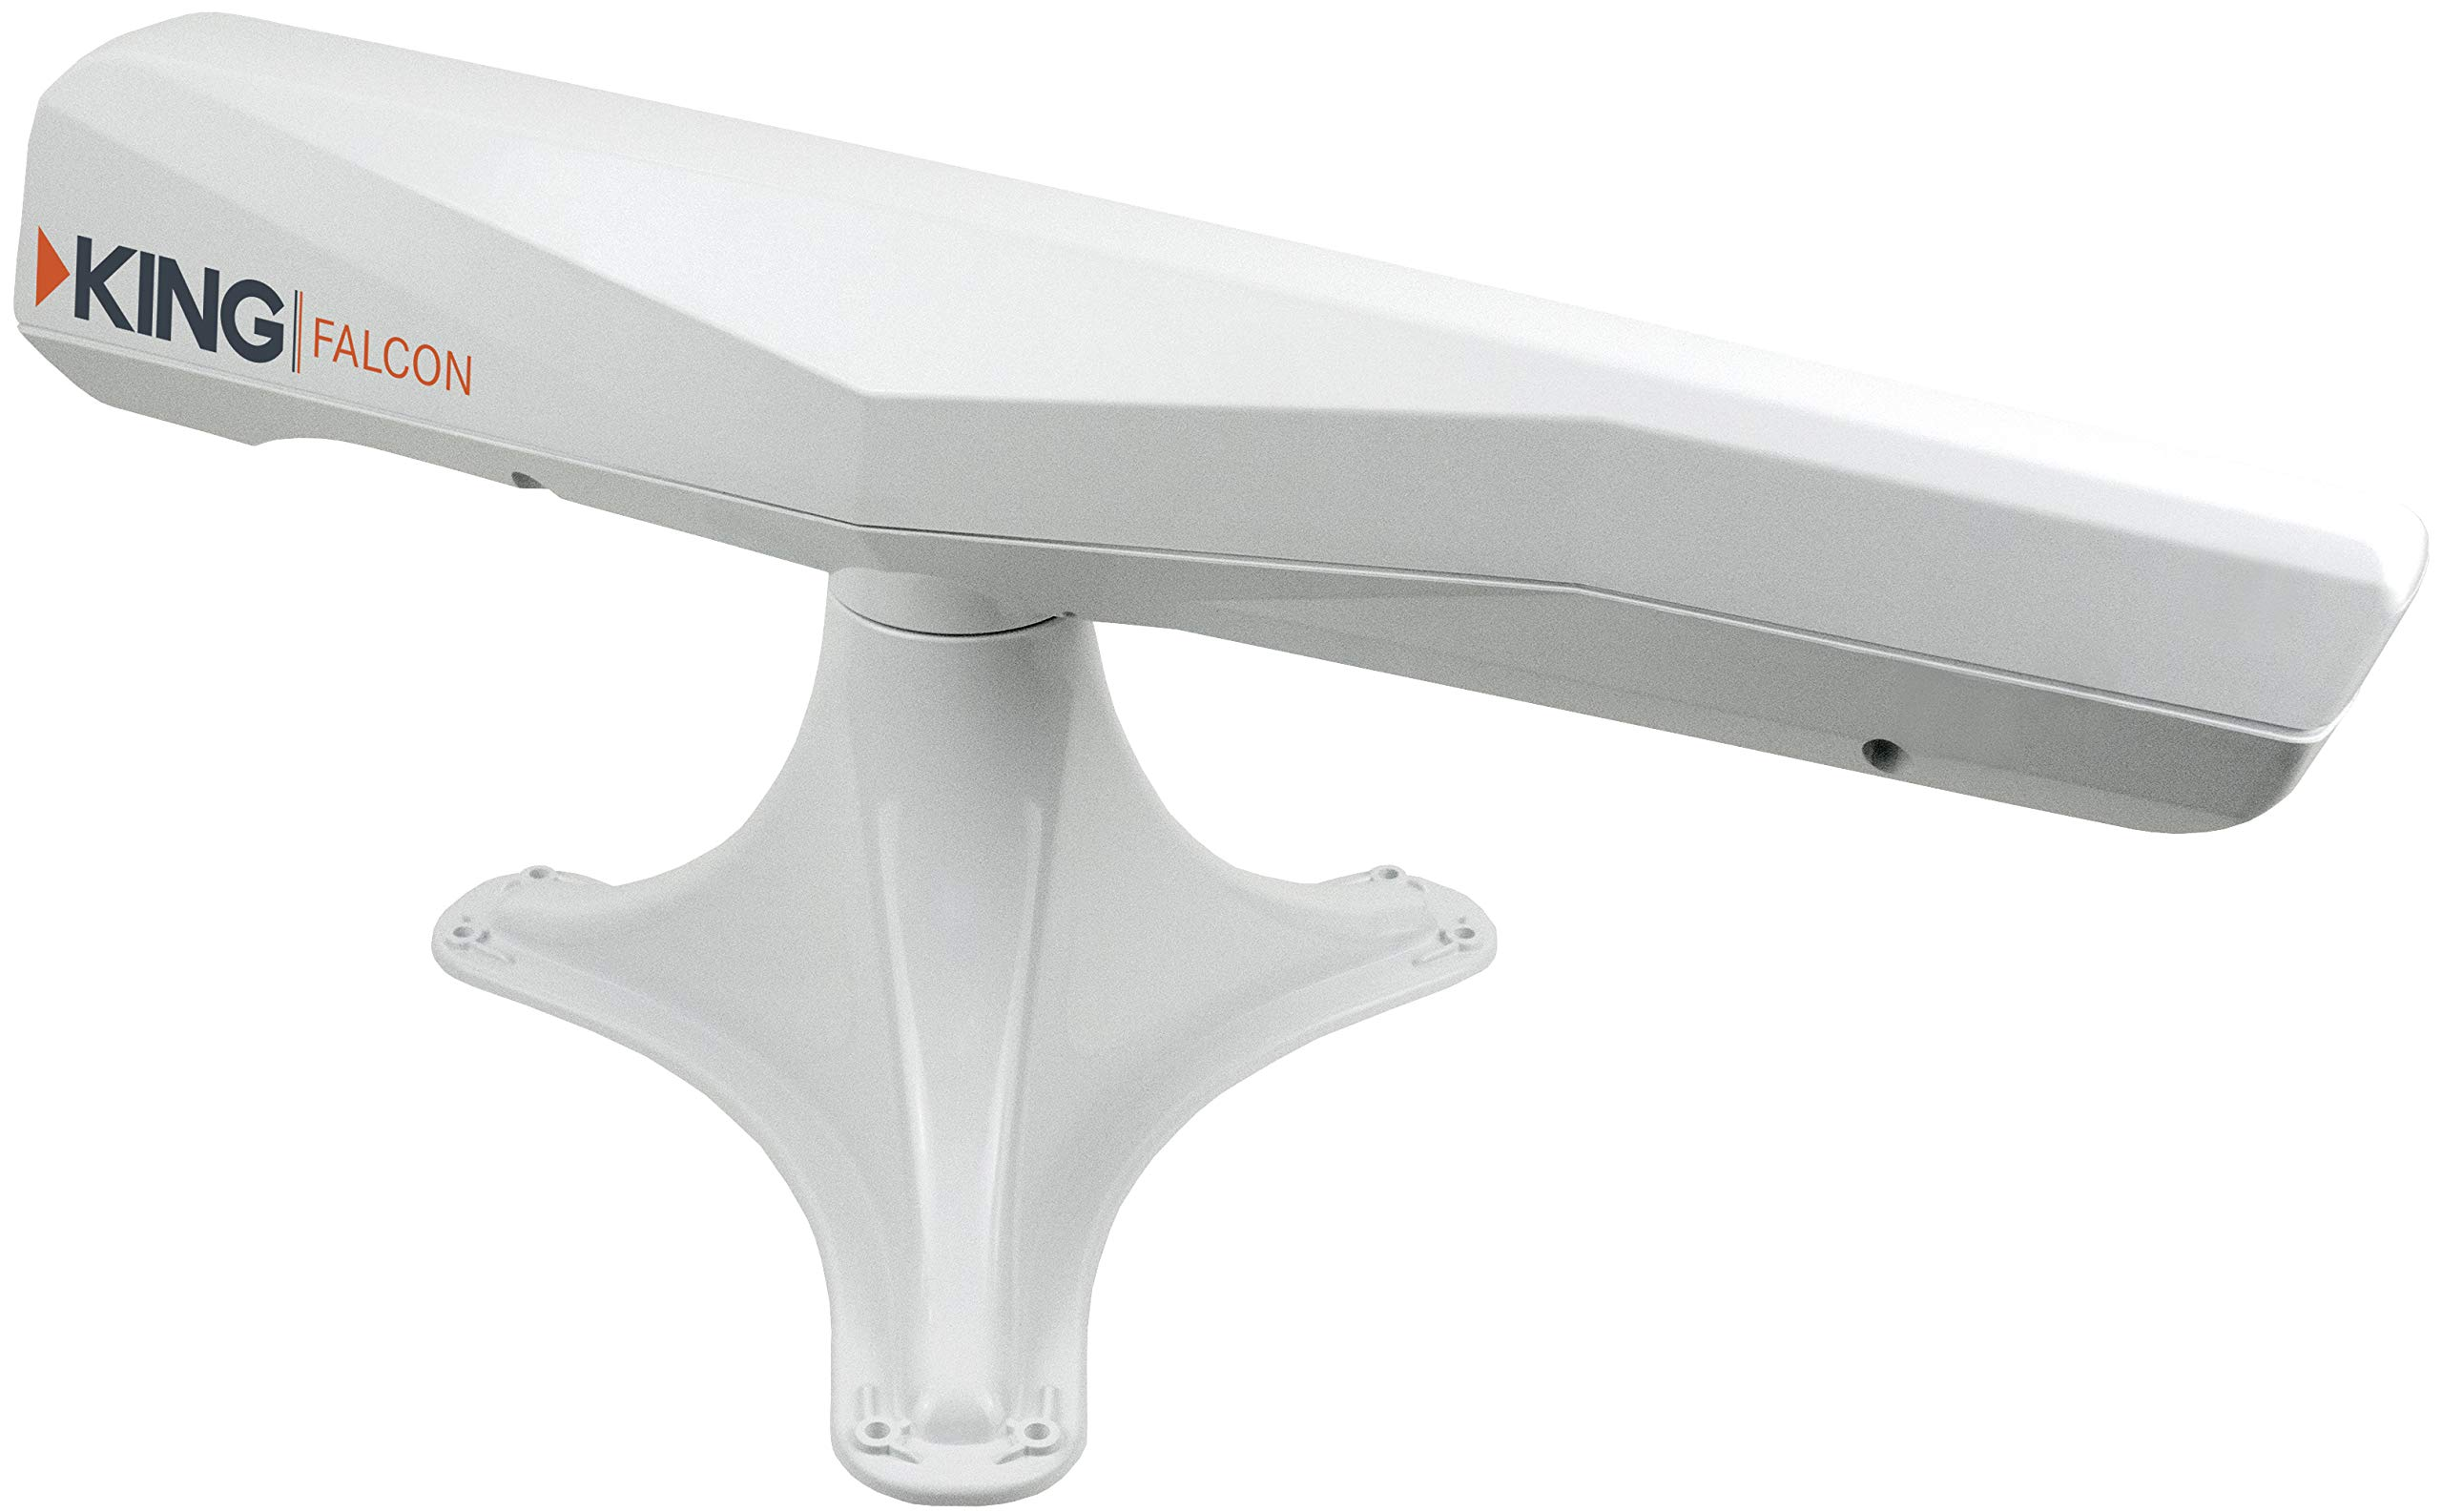 KING KF1000 Falcon Automatic Directional WiFi Antenna with WiFiMax Router and Range Extender - White by KING (Image #1)